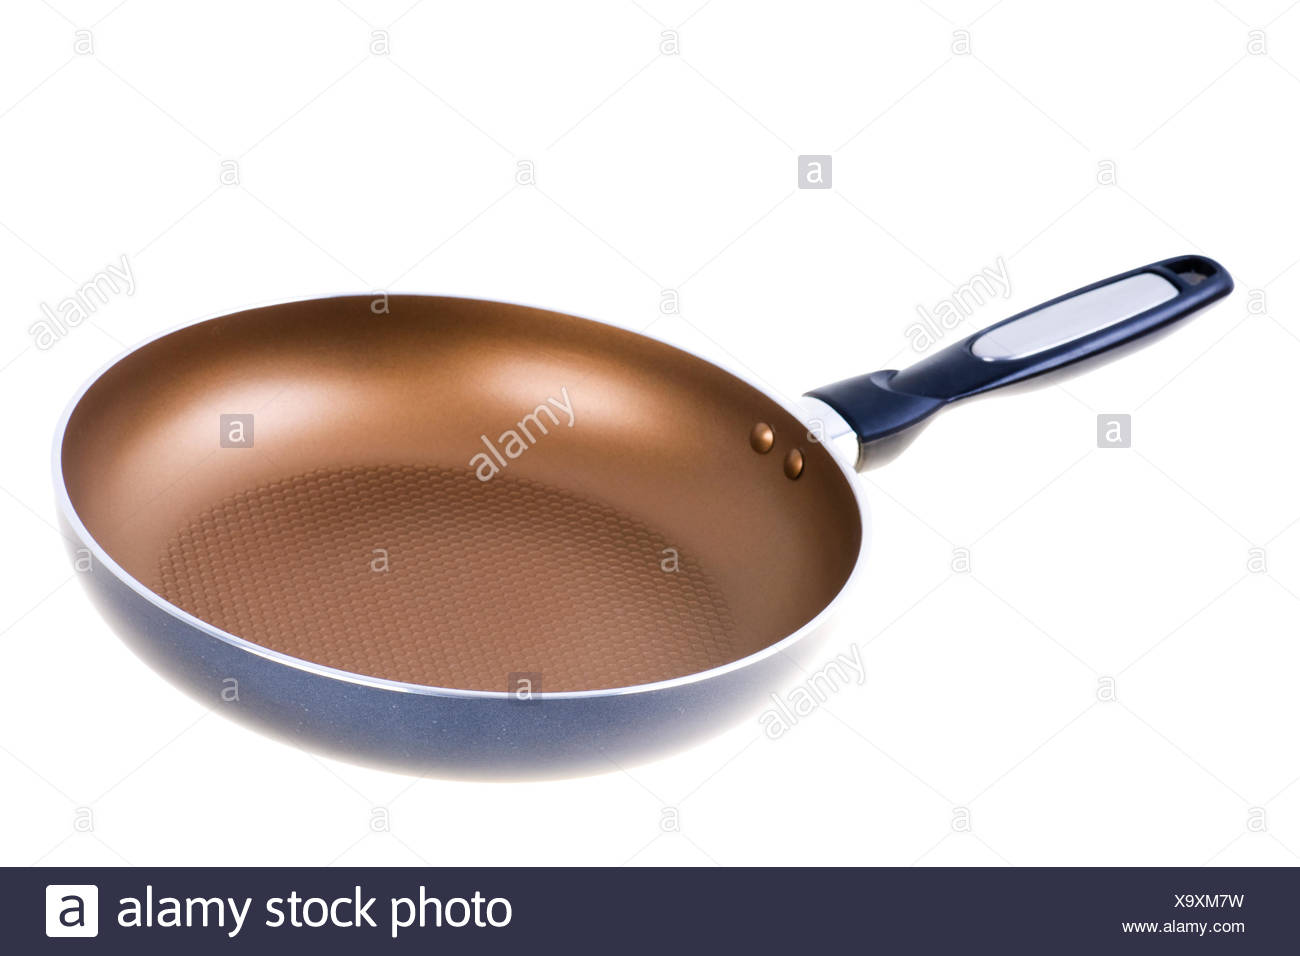 Close-up of the teflon frying pan isolated - Stock Image